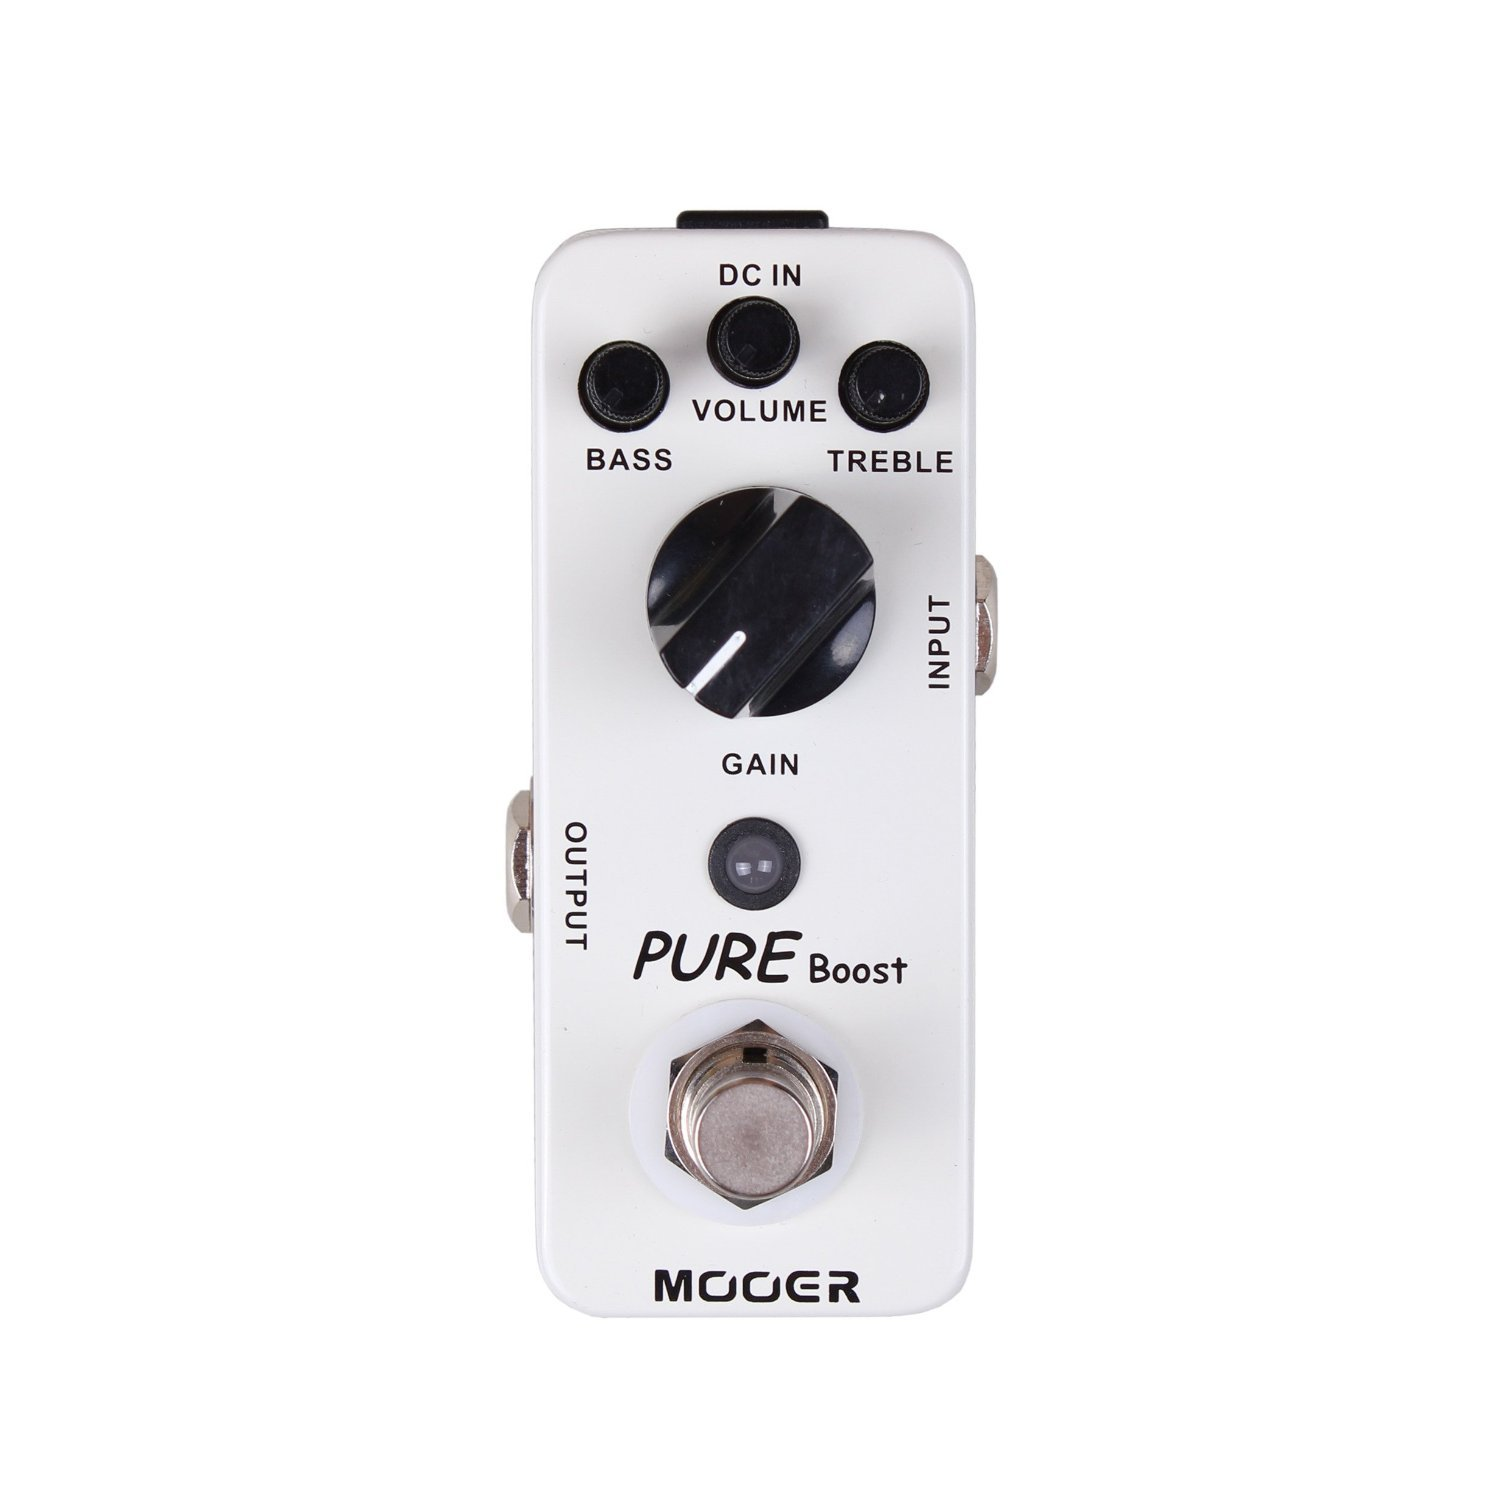 Mooer Pure Boost, clean boost pedal